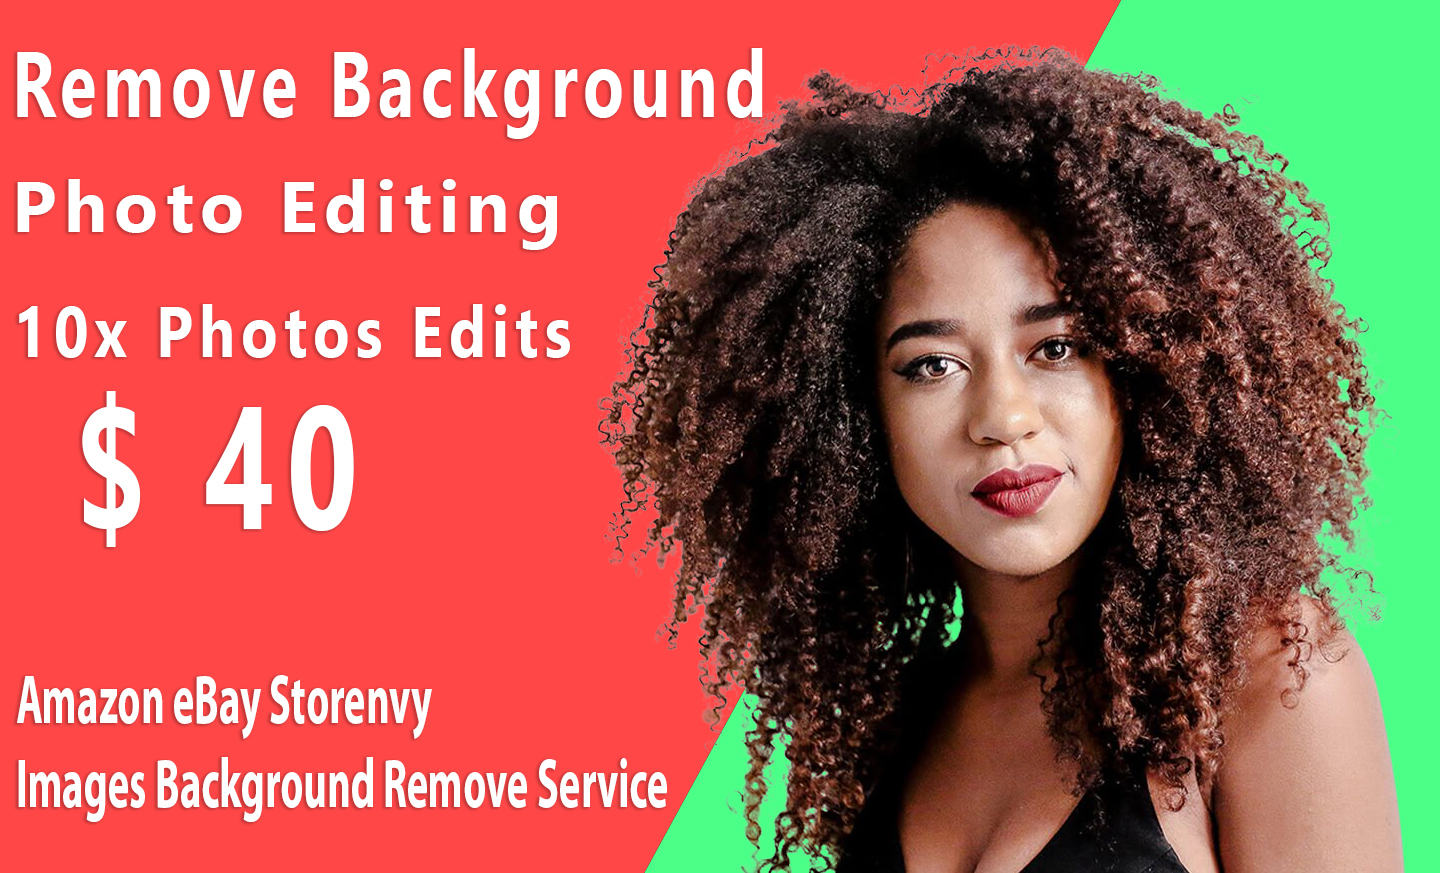 Remove Background Photo Editing – 10x Photos Edits